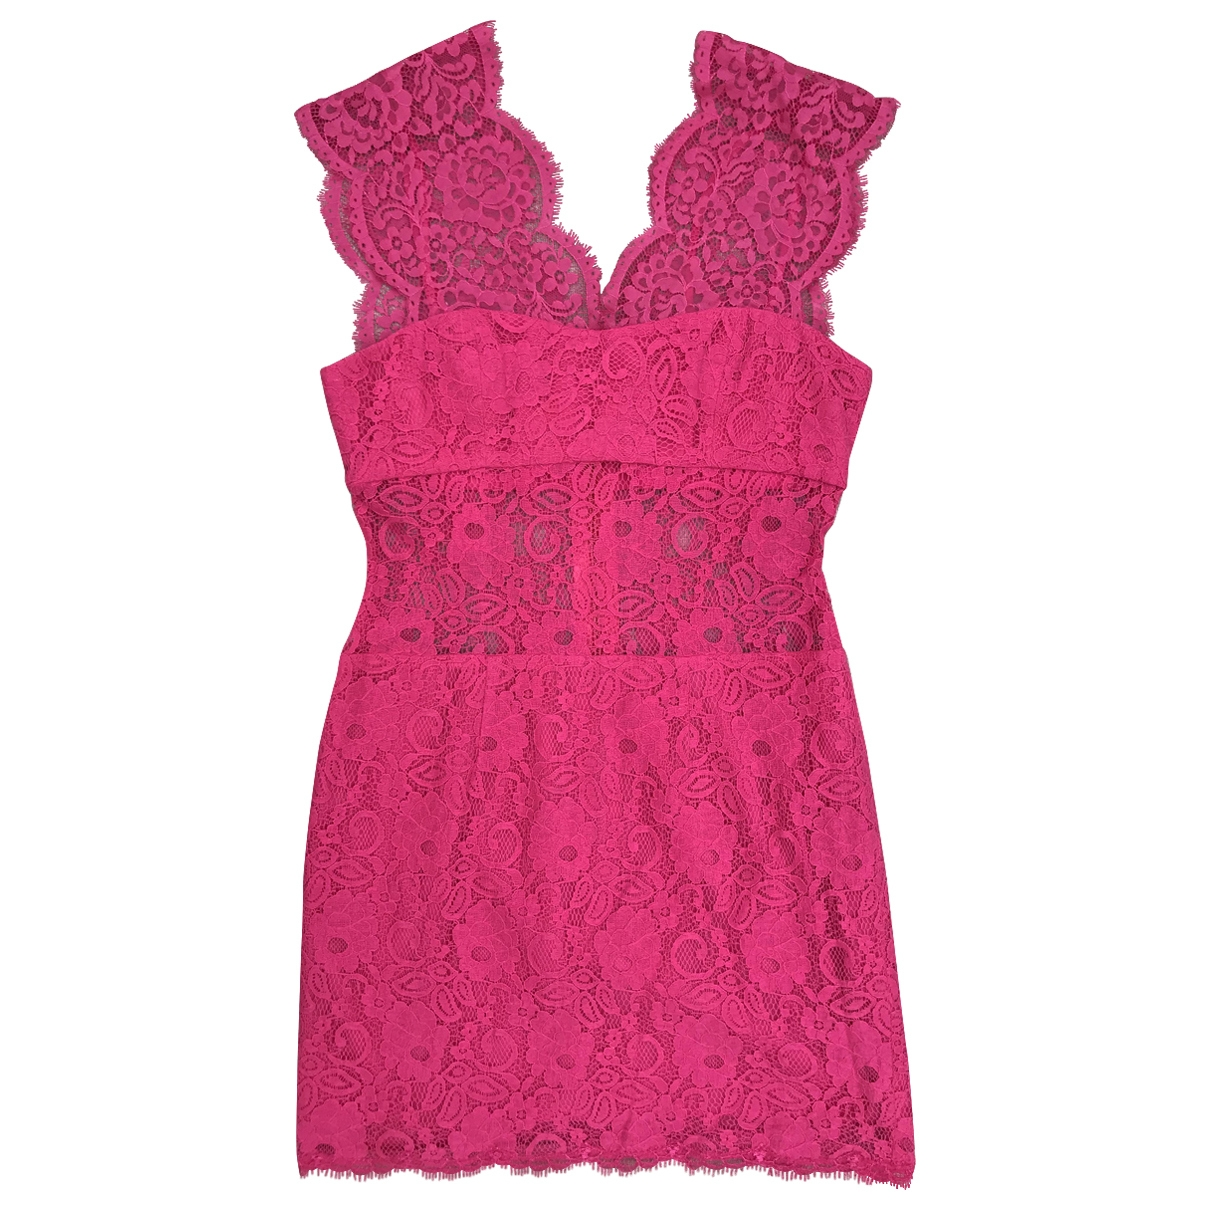 Bcbg Max Azria \N Pink Lace dress for Women 38 FR